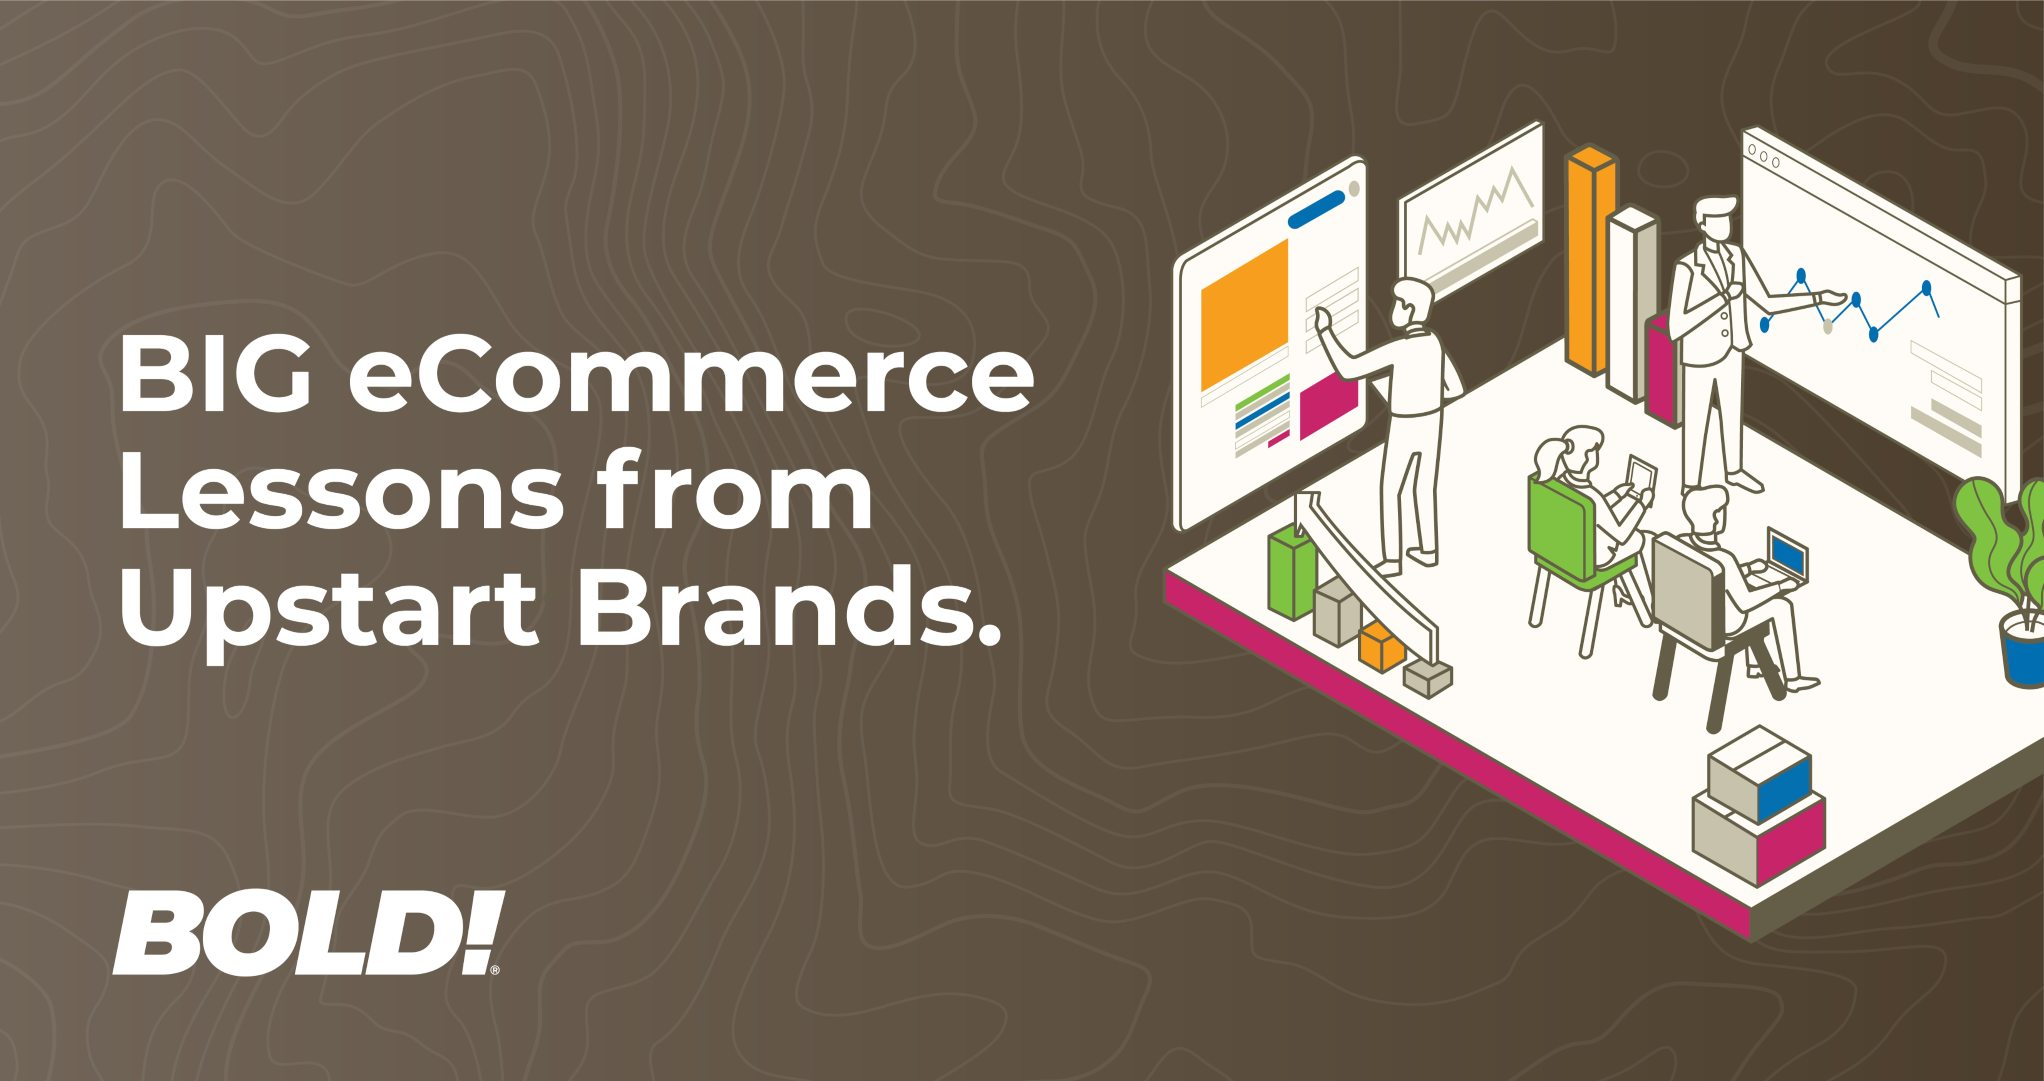 BIG eCommerce Lessons from Upstart Brands